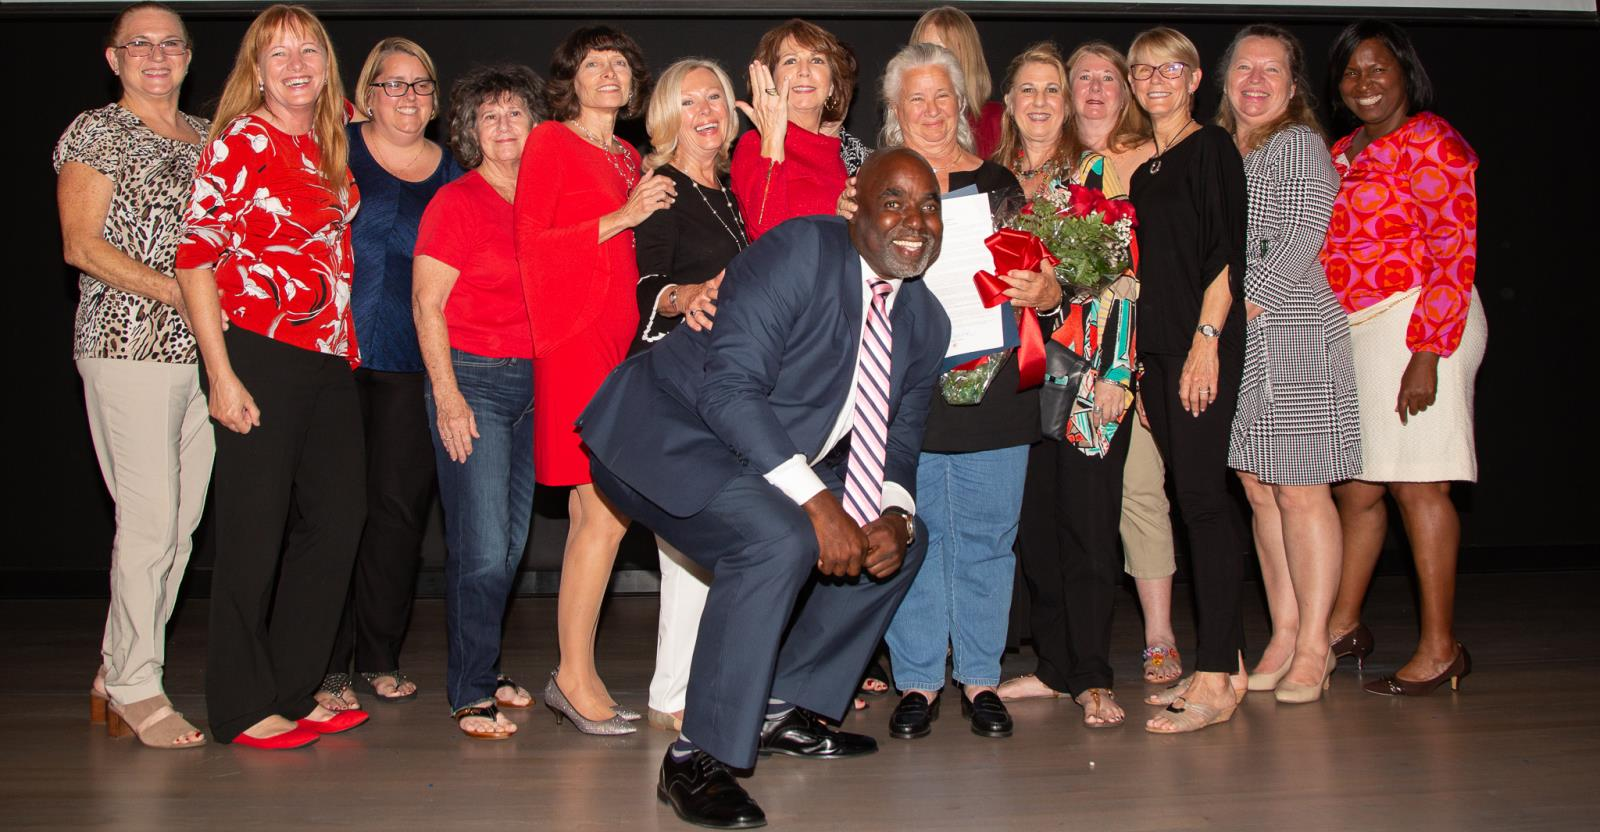 District III Commissioner Robert L. McKinzie with 2018 Citizen of the Year Jo Ann Smith and the proud members of the Fort Lauderdale Woman's Club